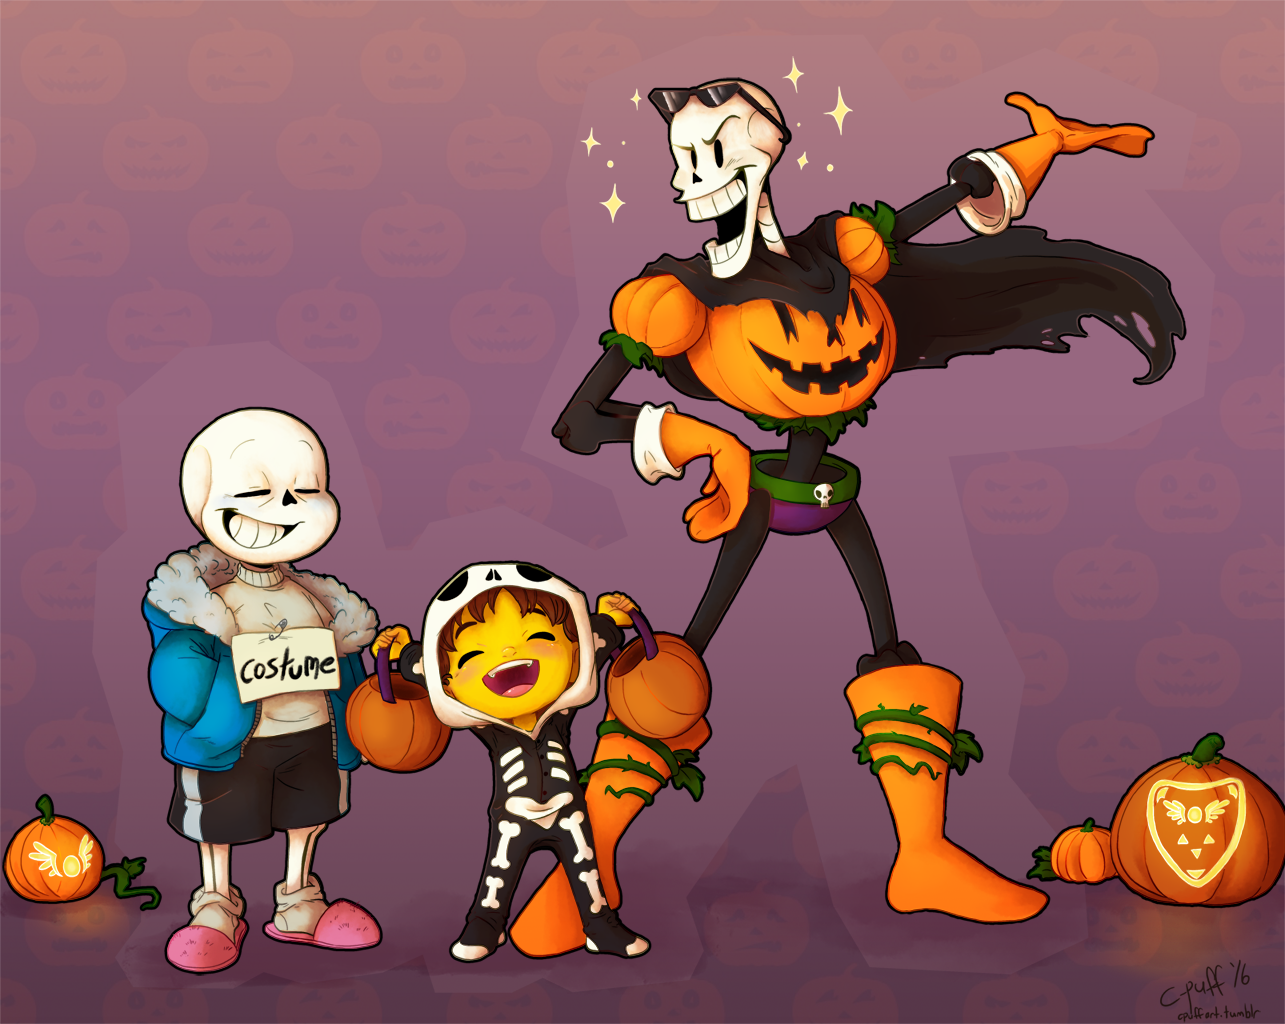 Spooky Scary Skeletons | Undertale | Know Your Meme